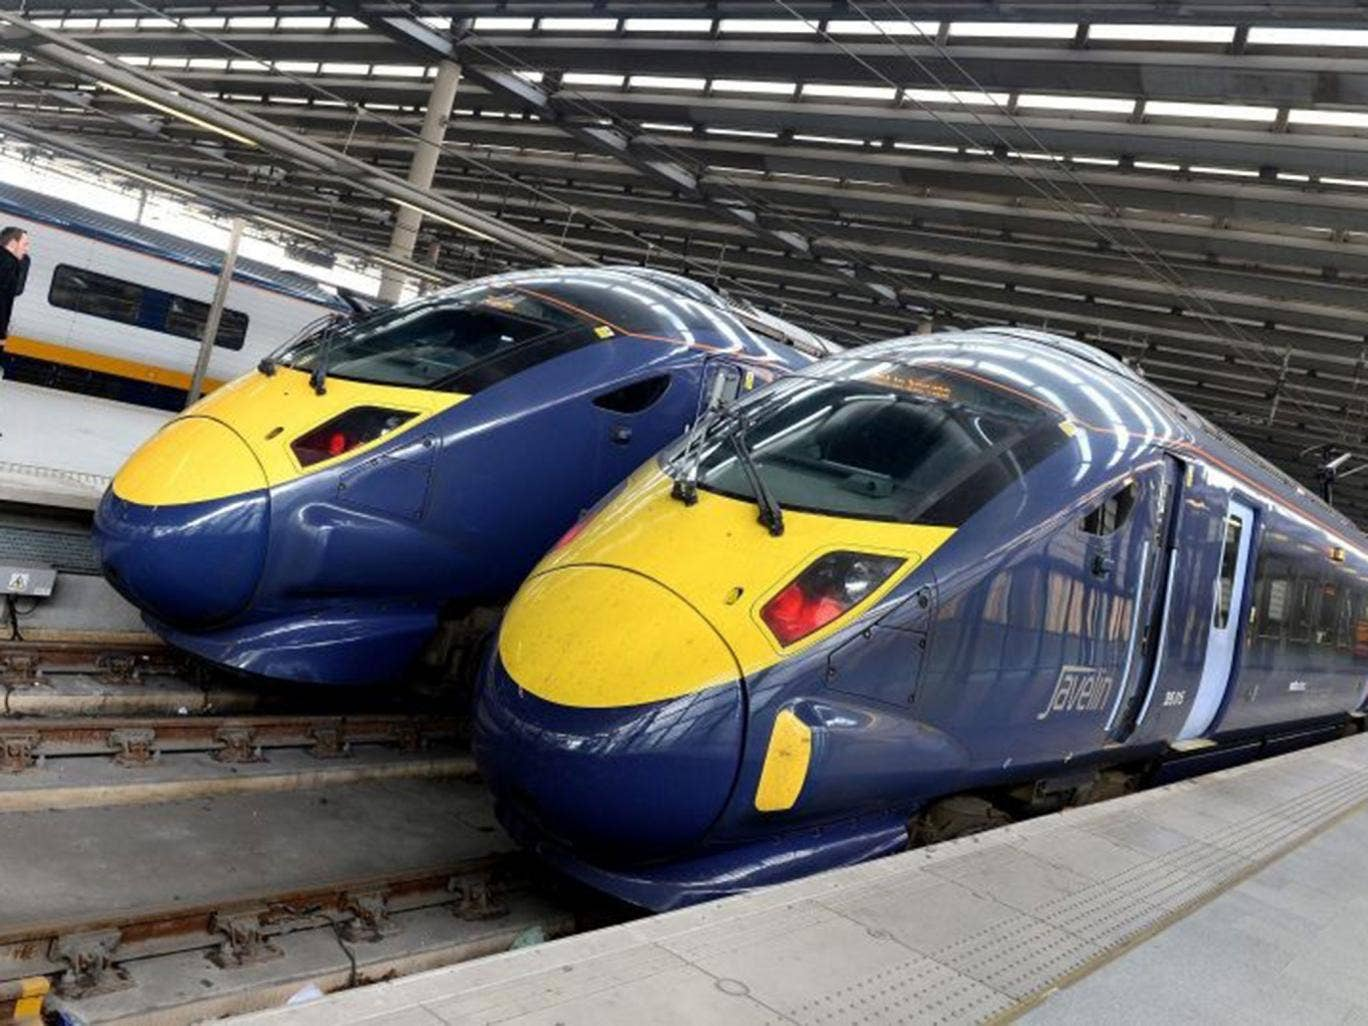 Hitachi is to build its next generation of inter-city trains in the UK